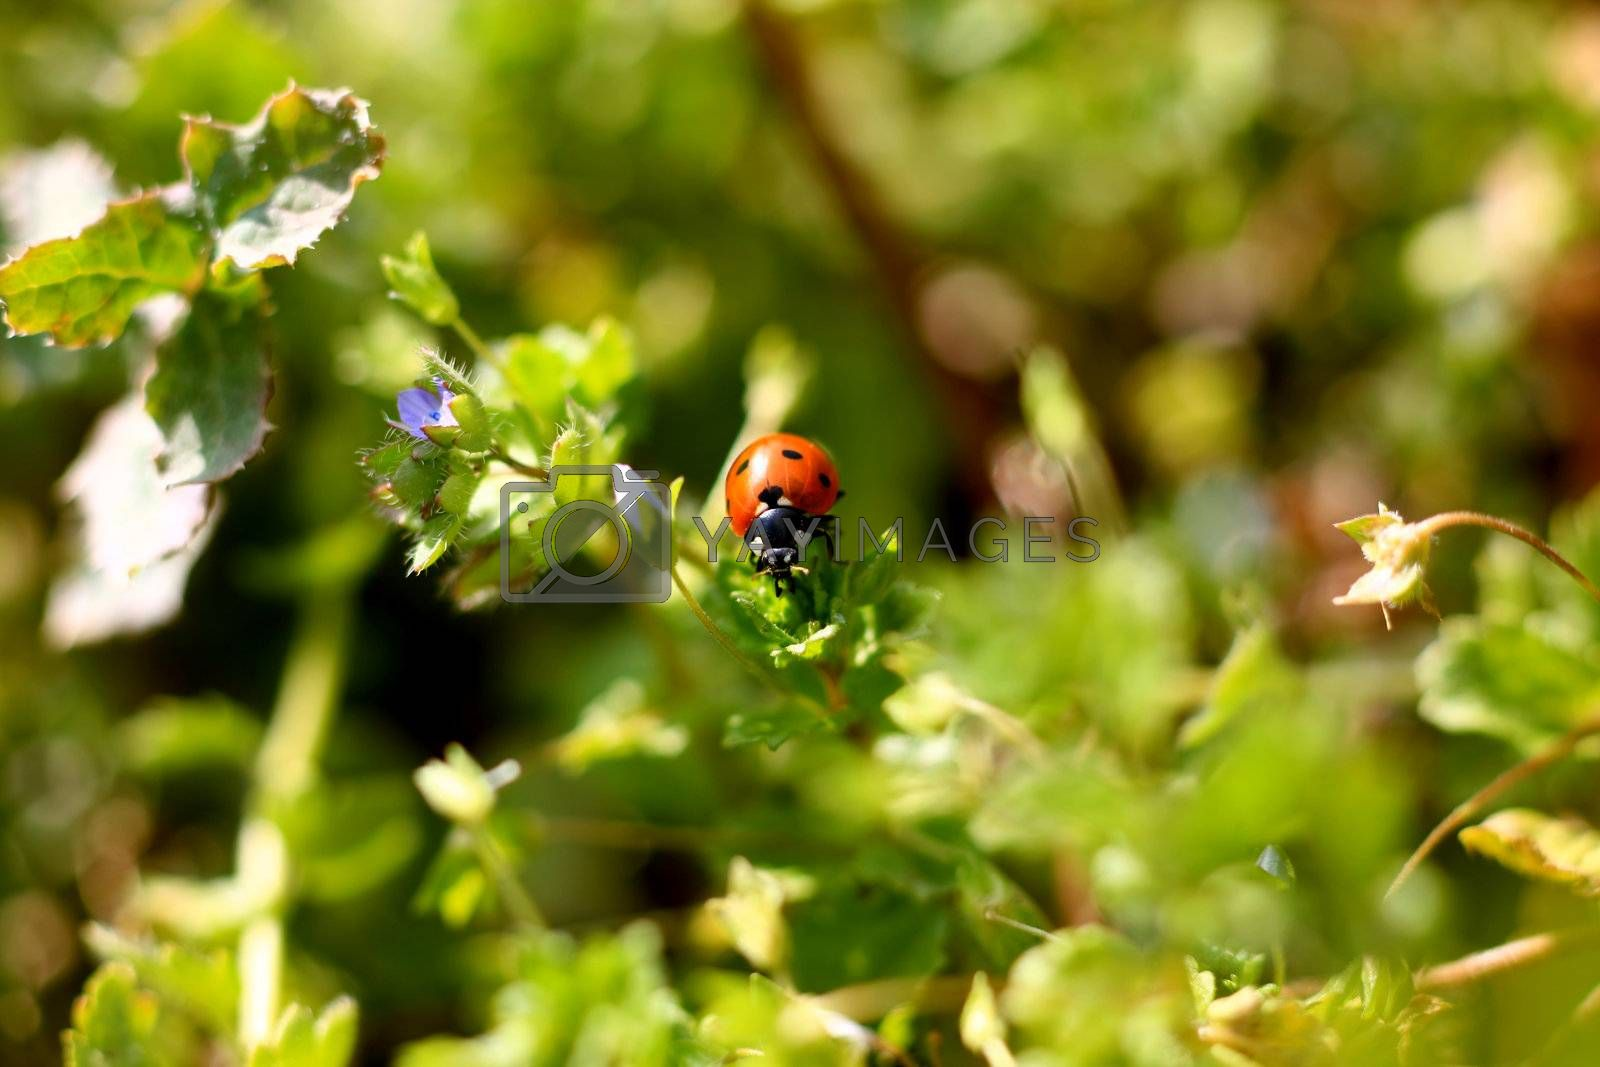 Royalty free image of Ladybug on a plant by monner